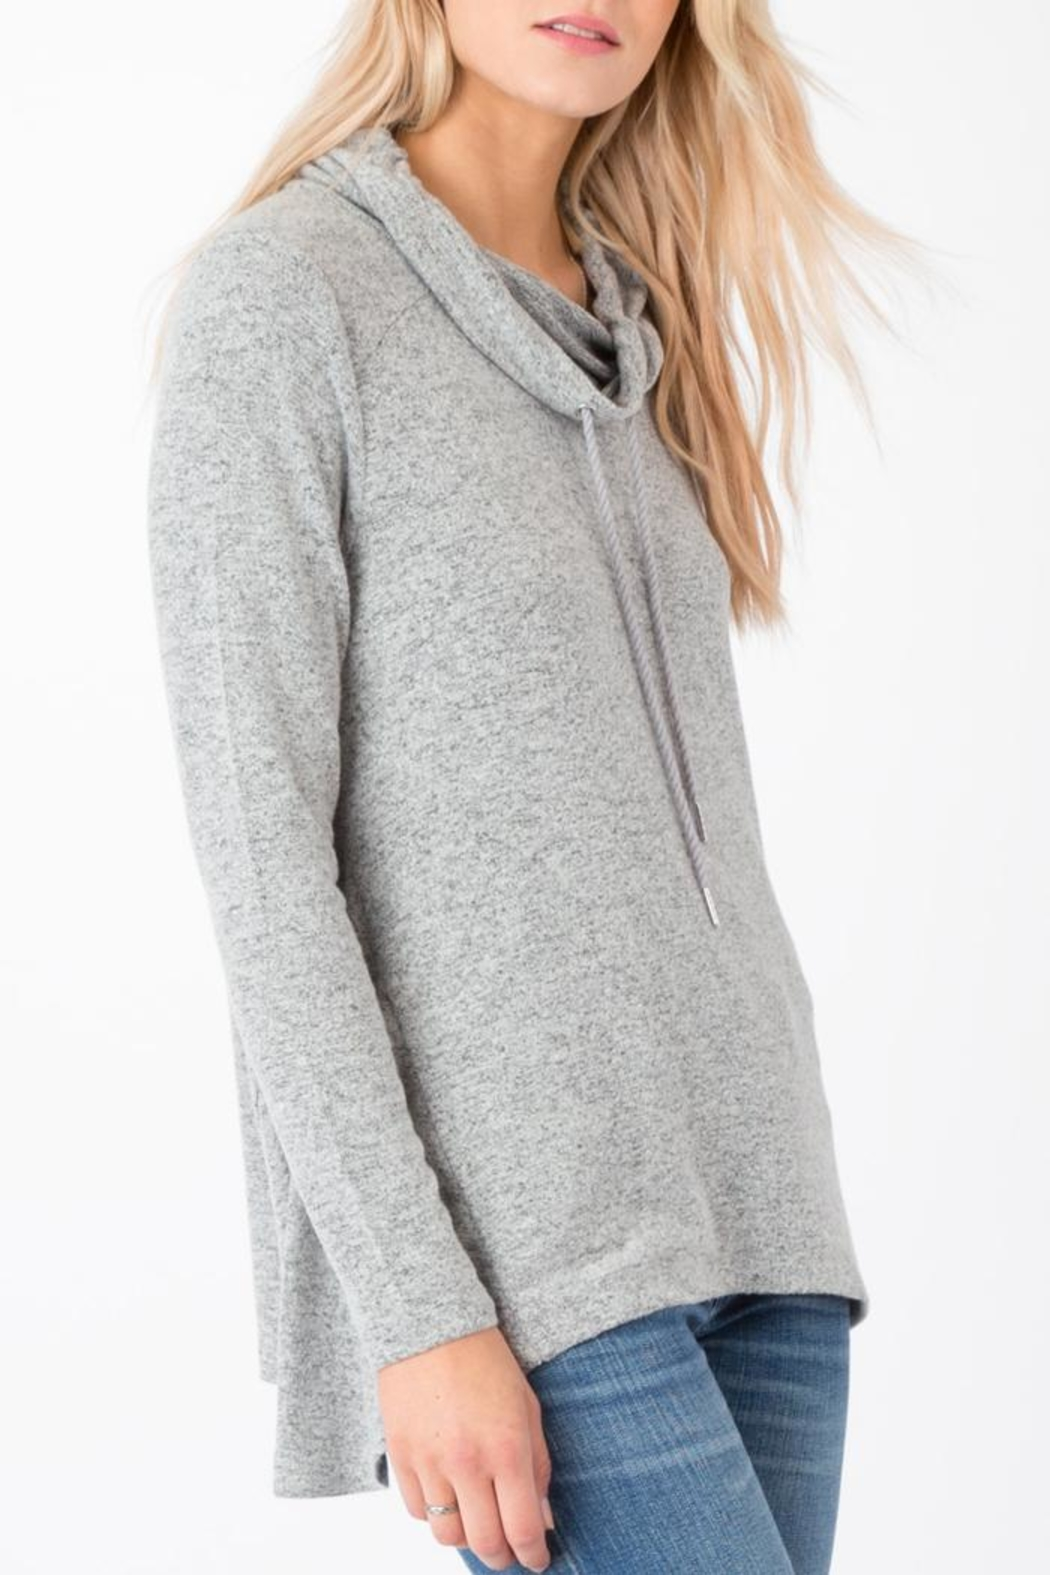 z supply Marled Cowl-Neck Sweater - Side Cropped Image